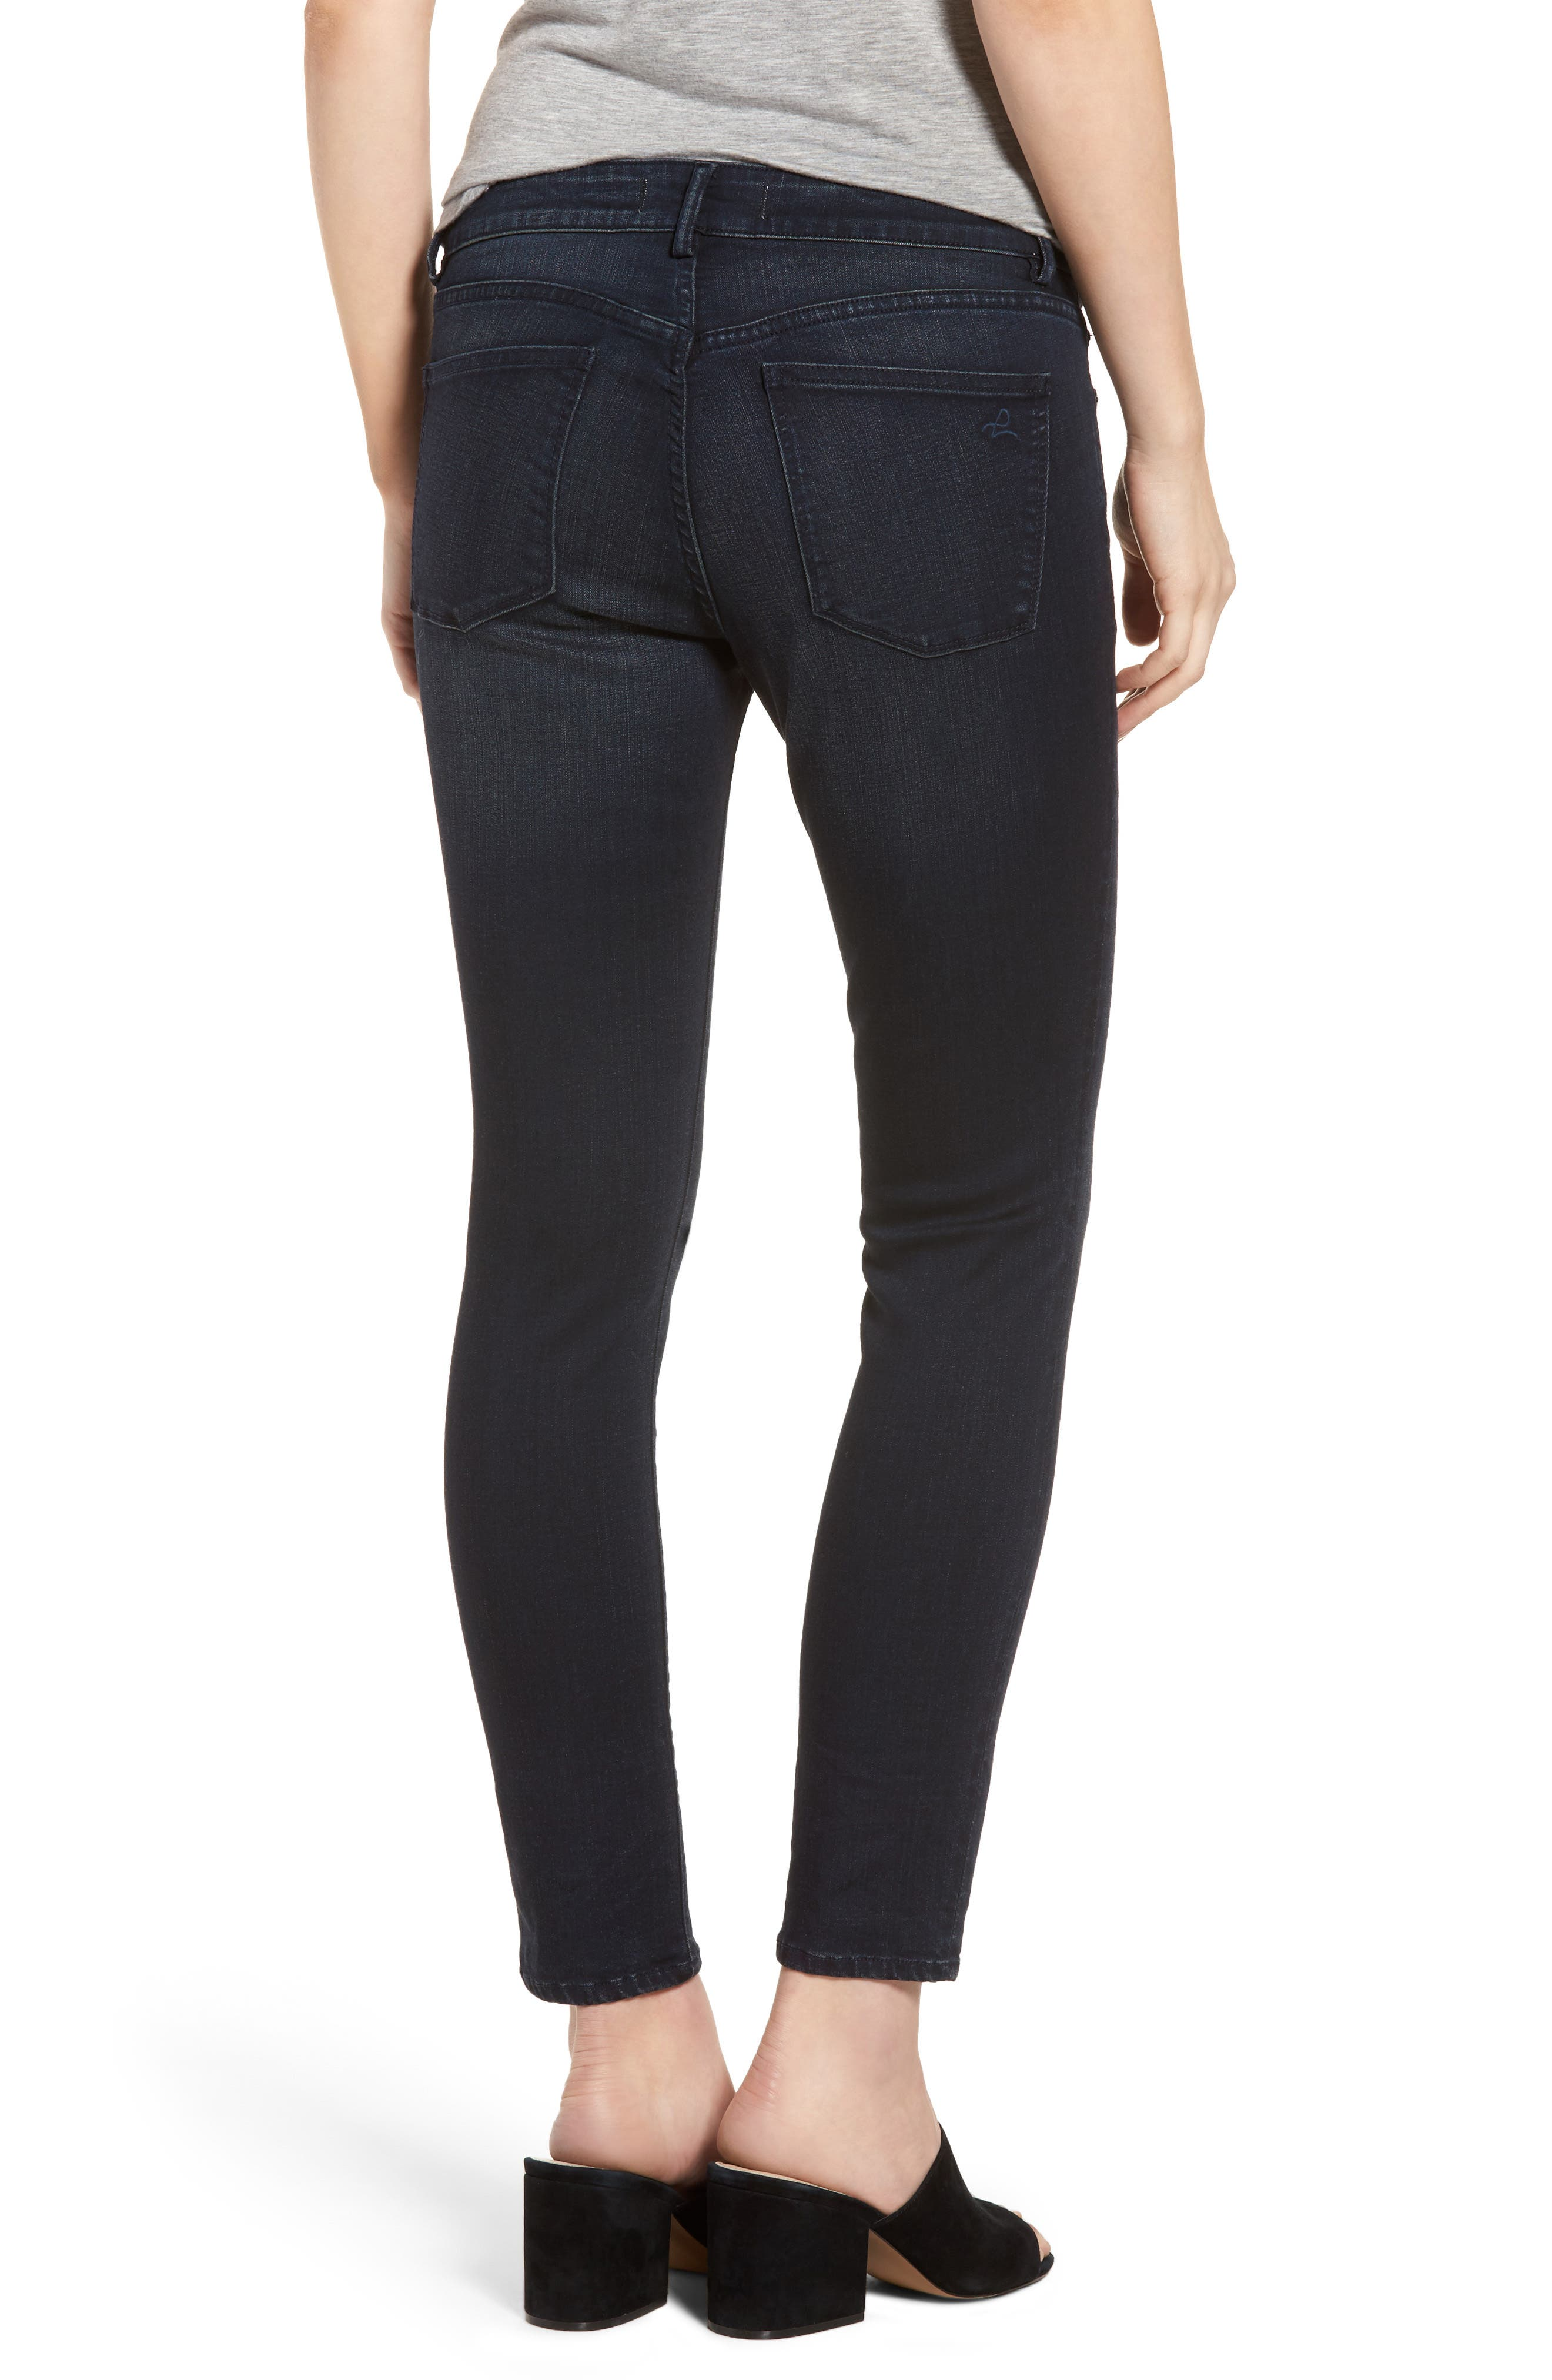 Coco Curvy Skinny Ankle Jeans,                             Alternate thumbnail 2, color,